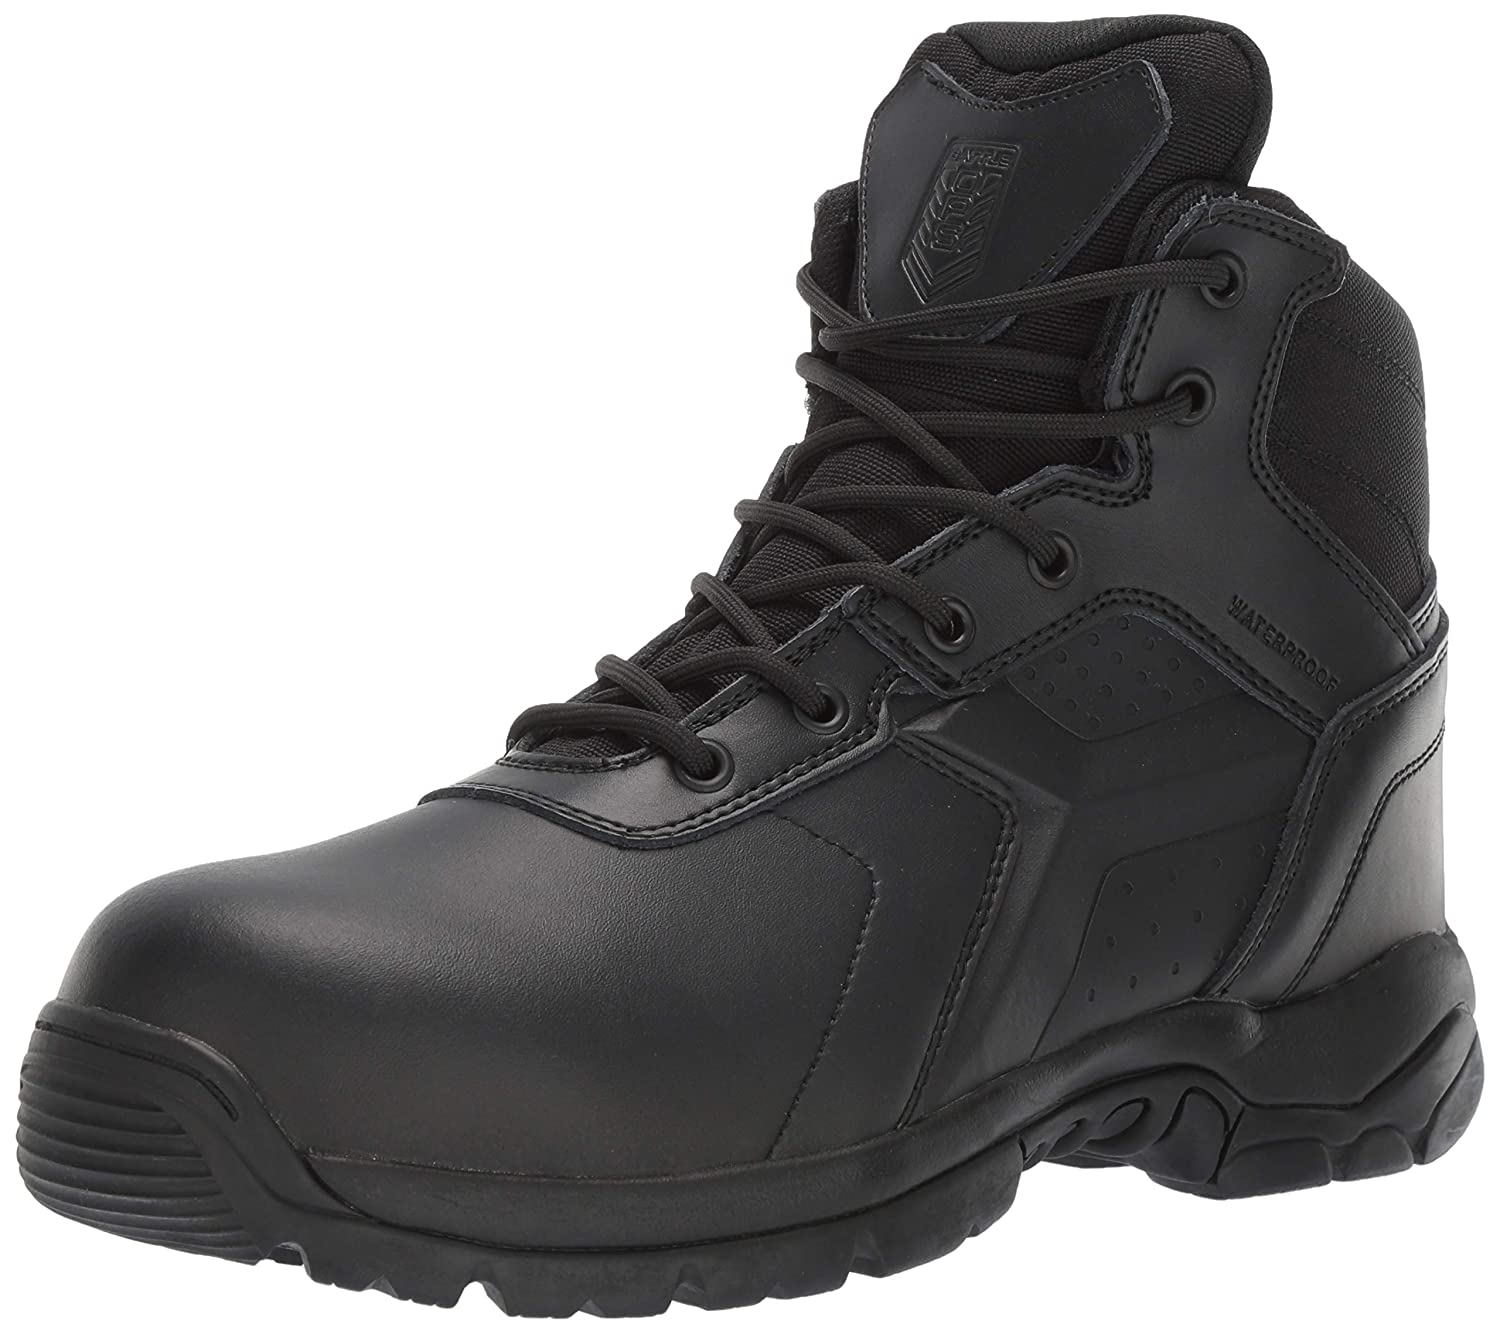 db4e09bc972 Battle OPS Men's 6-inch Waterproof Side Zip Tactical Boot Comp Safety Toe  Bops6002 Military